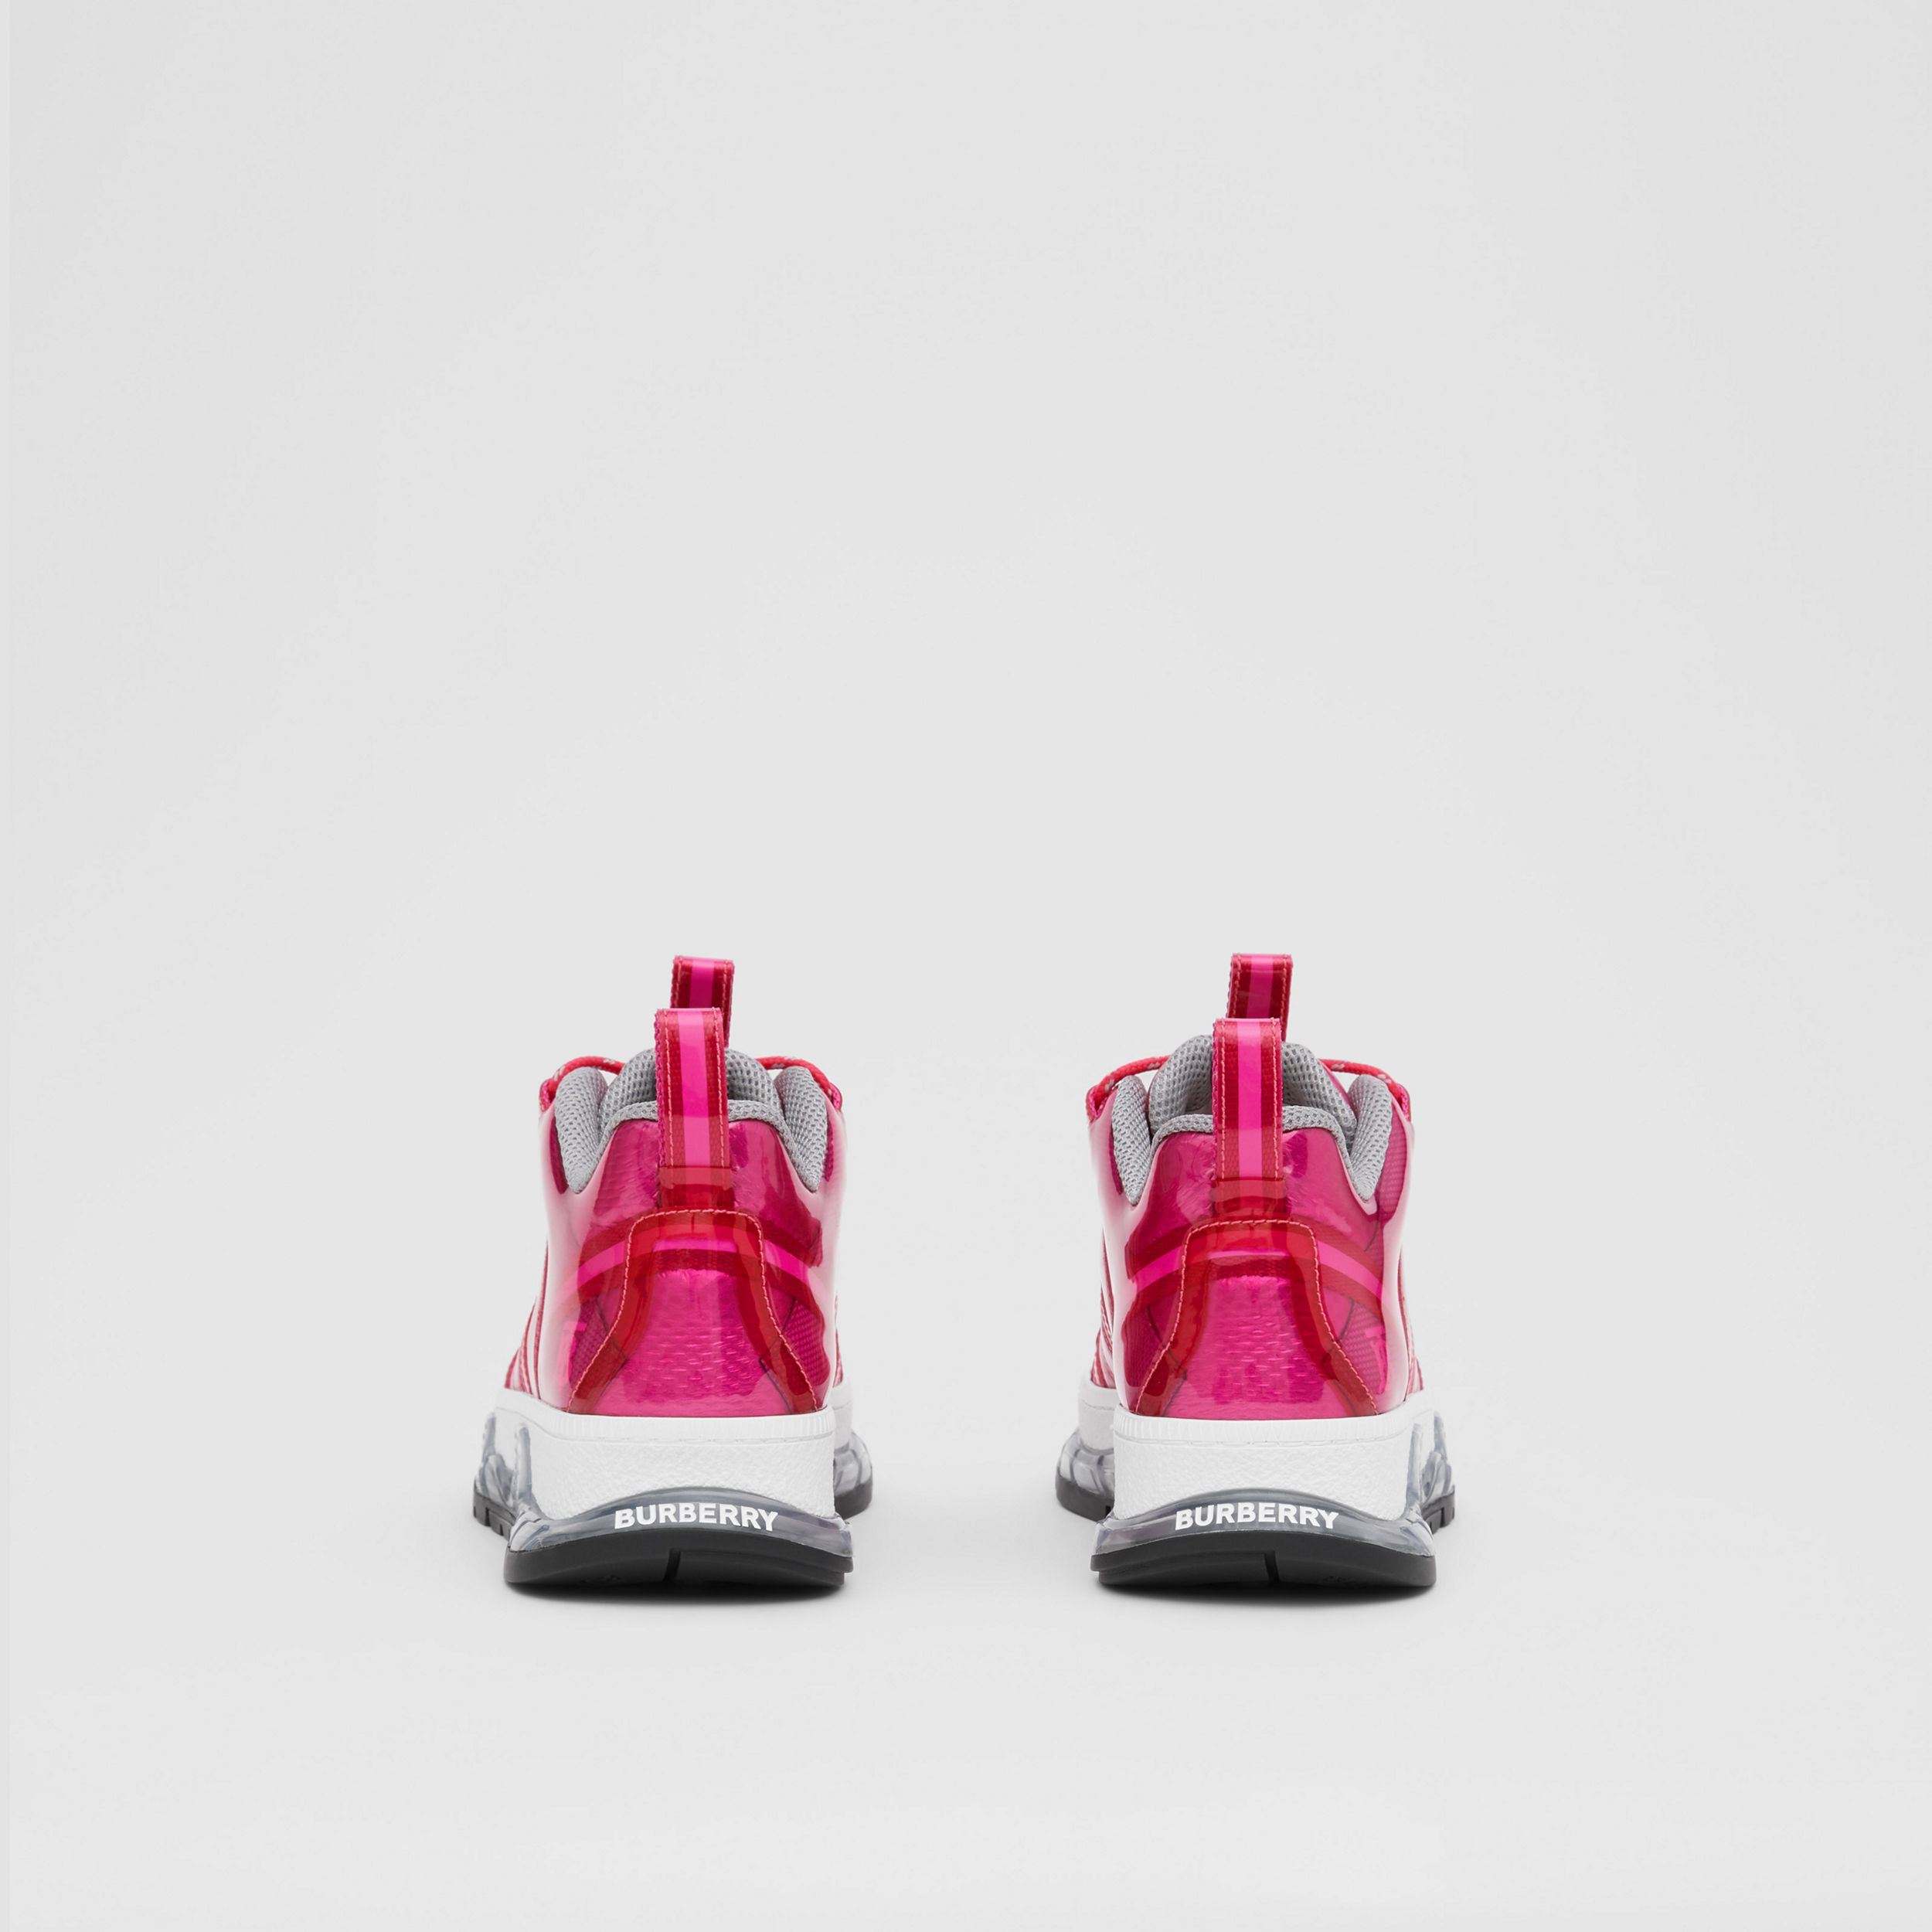 Vinyl and Nylon Union Sneakers in Fuchsia - Women | Burberry - 4